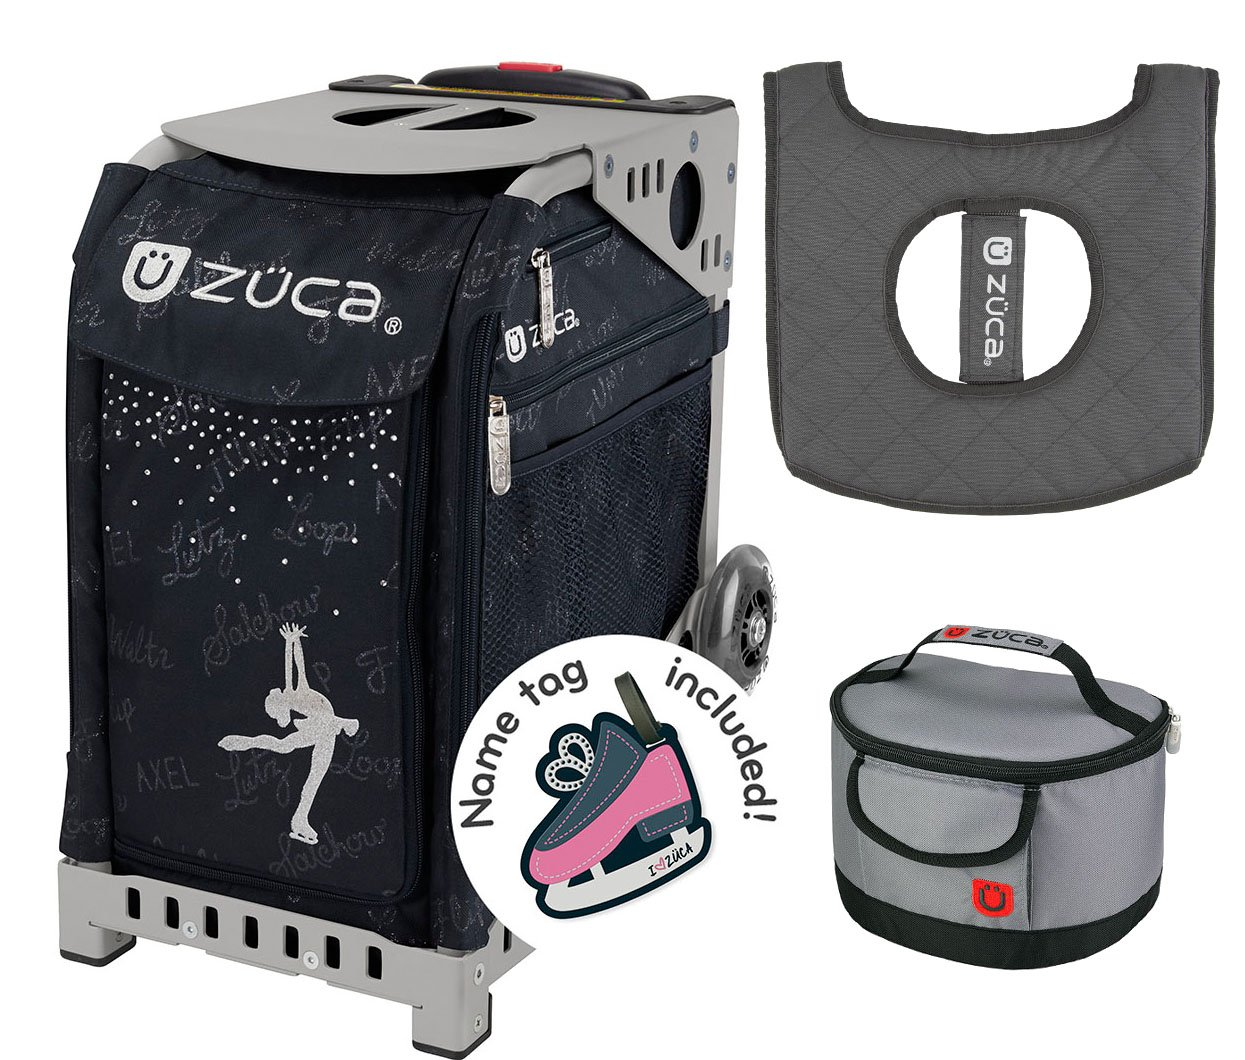 Zuca Sport Bag - Ice Queen with Gift Lunchbox and Seat Cover (Gray Frame, Gray Lunchbox) by ZUCA